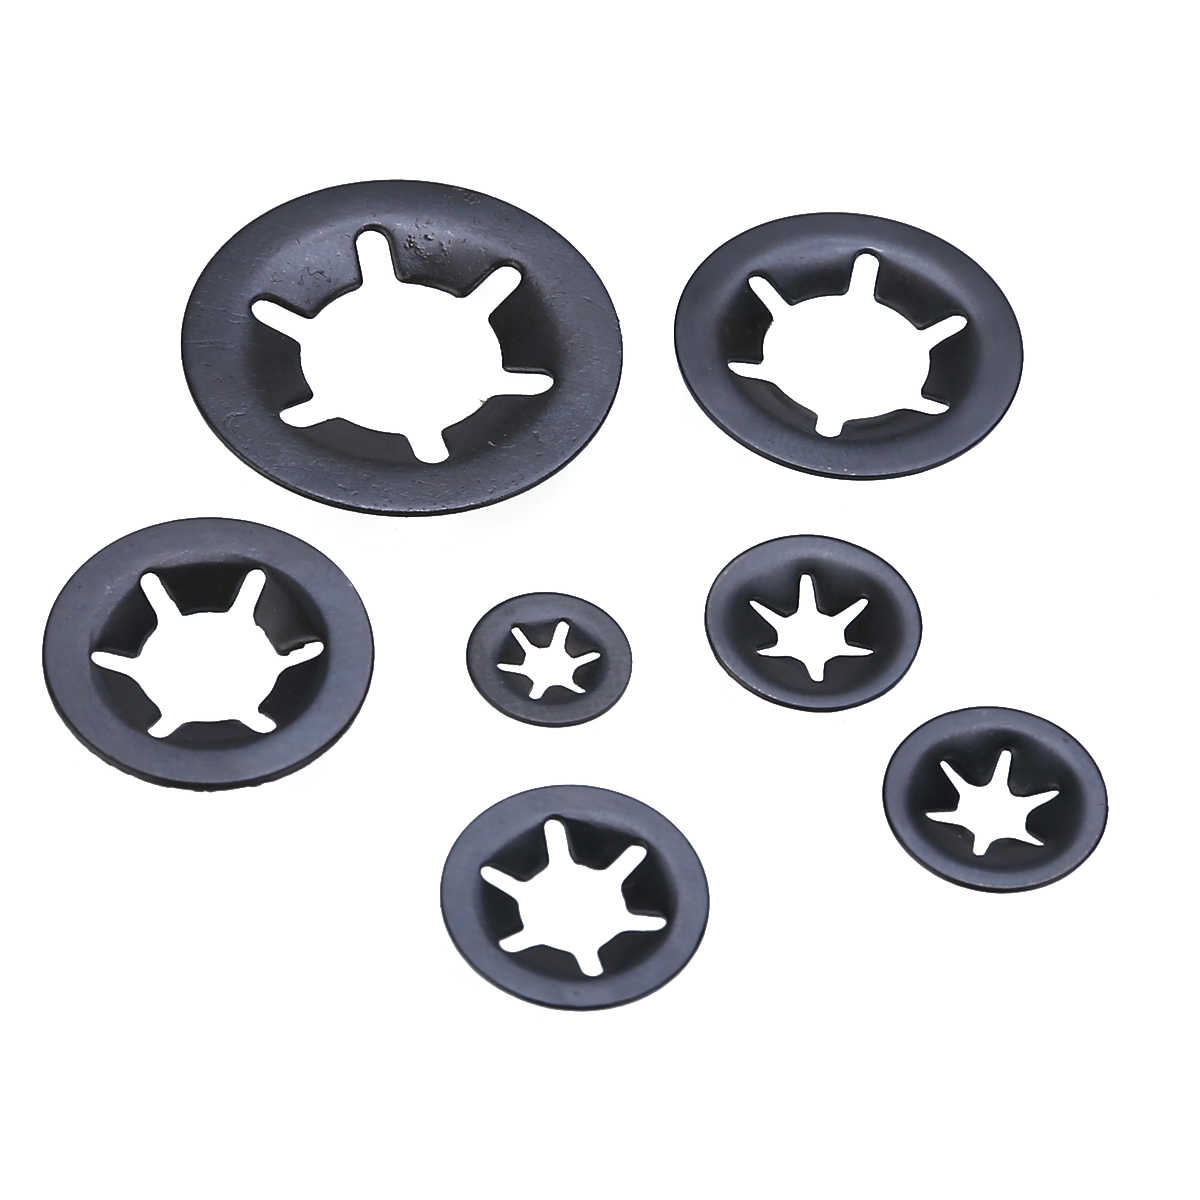 Assorted Star Push On Lock Clamp Speed Grab Star Washers  2mm-16mm Packs Of 10